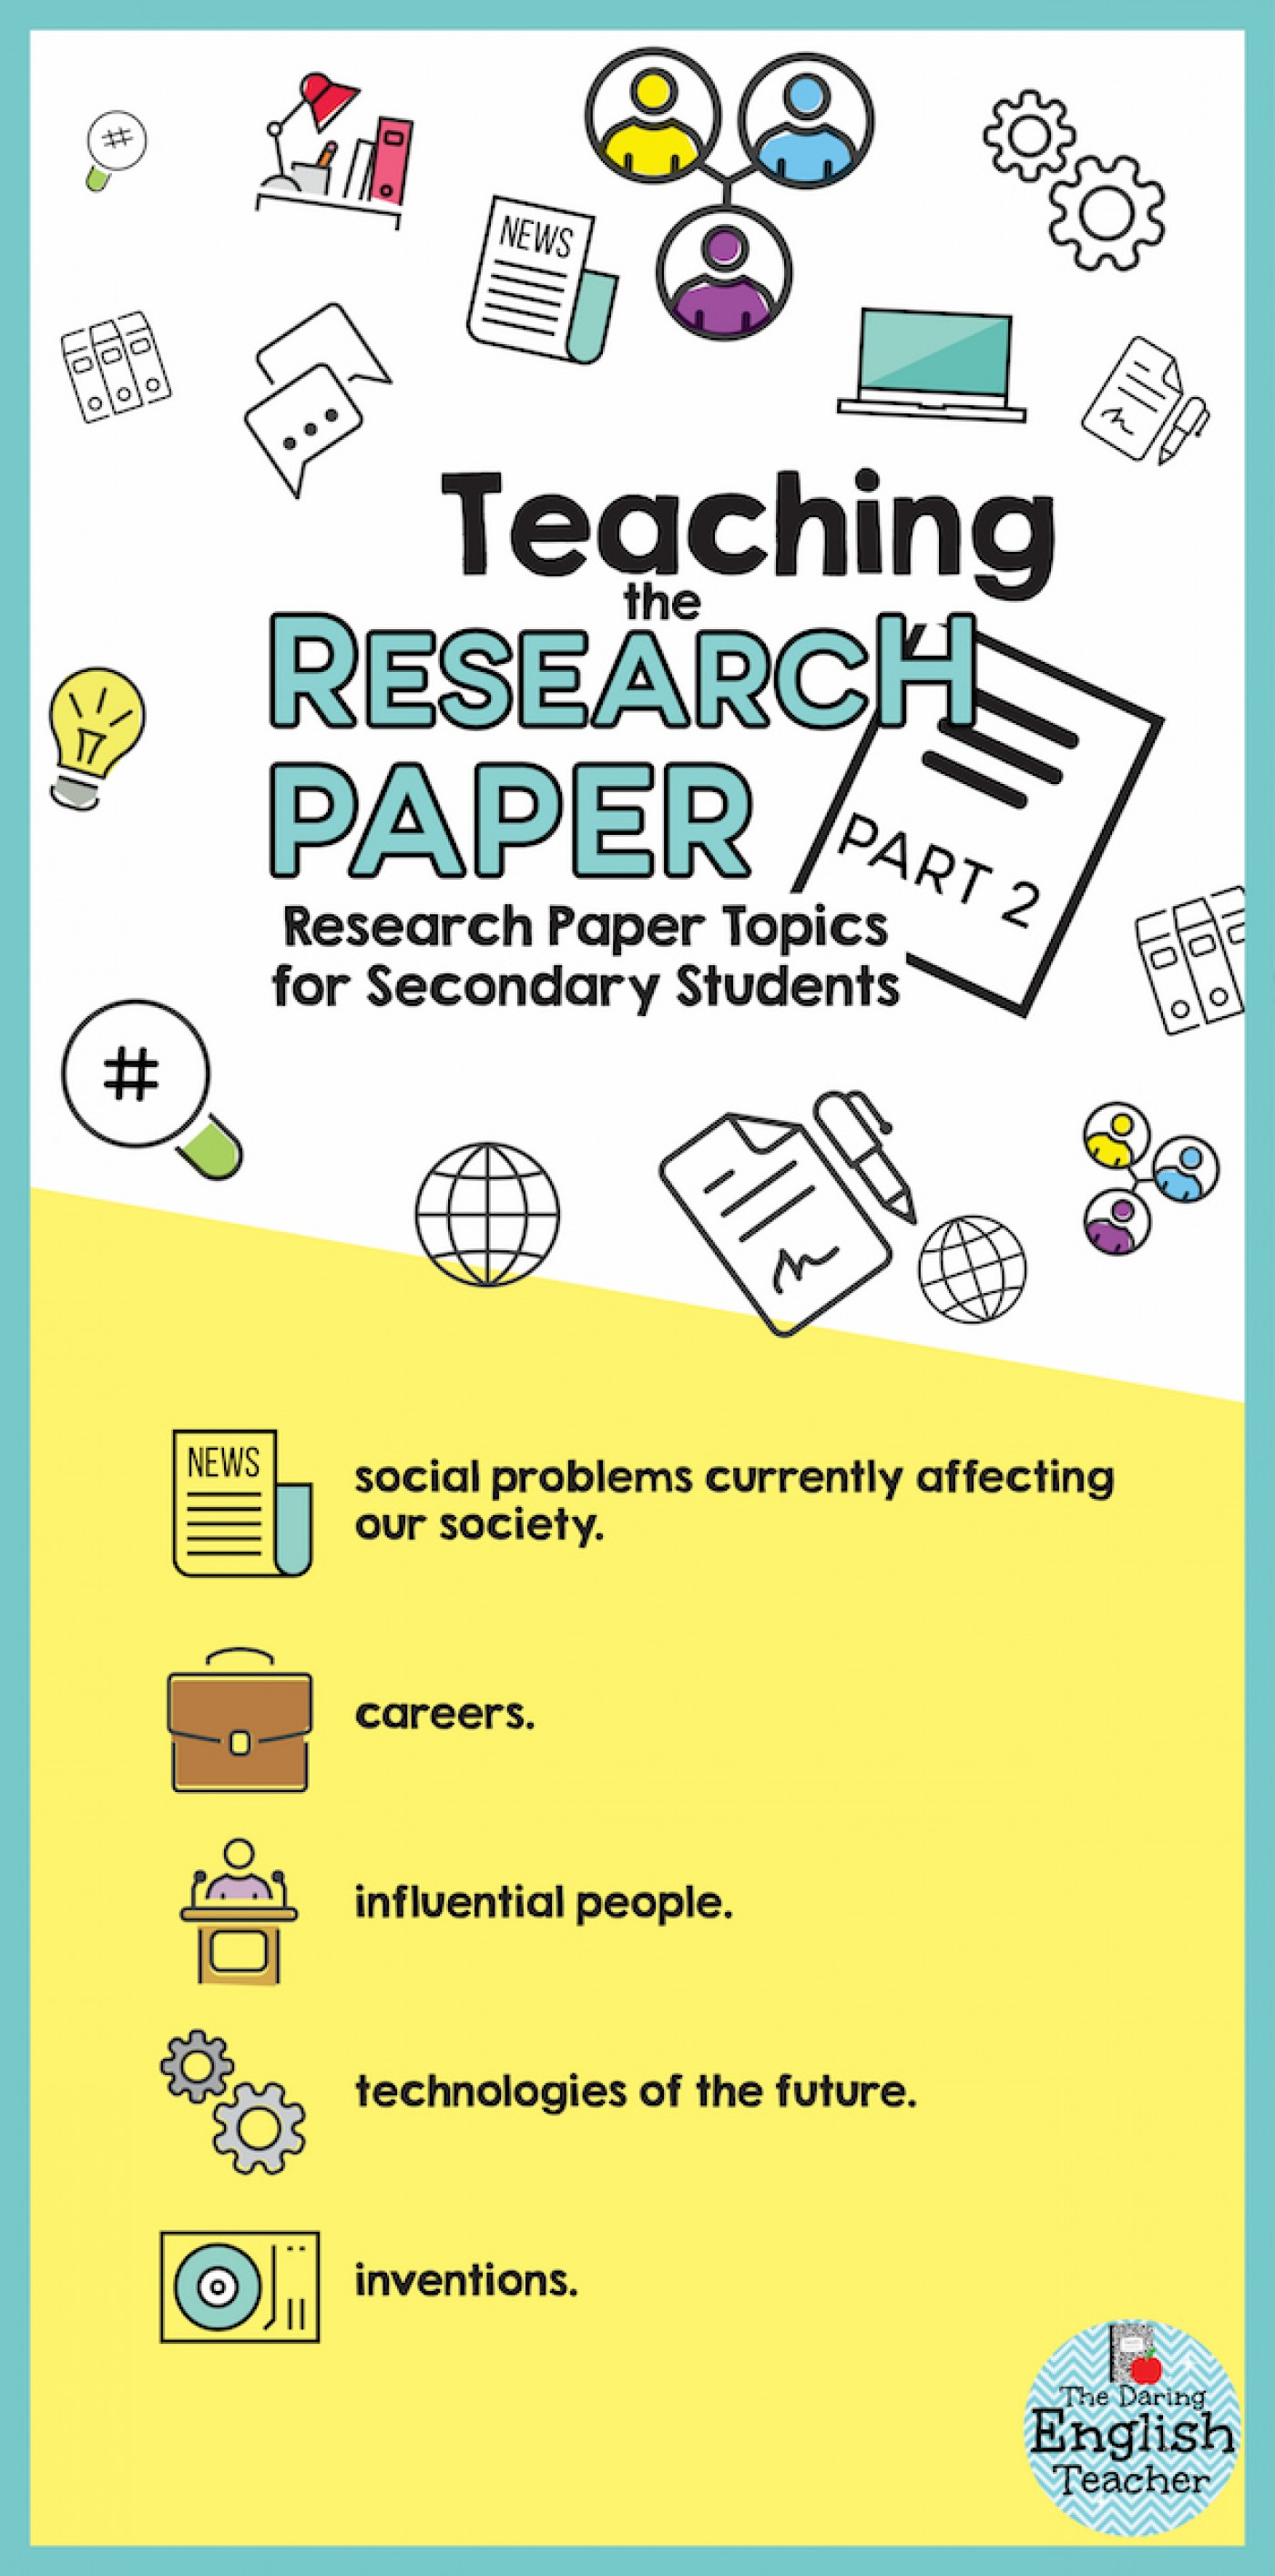 020 Infographic2bp22b2 Research Paper Topic For Unusual A Topics In Psychology List Of On Education 1400